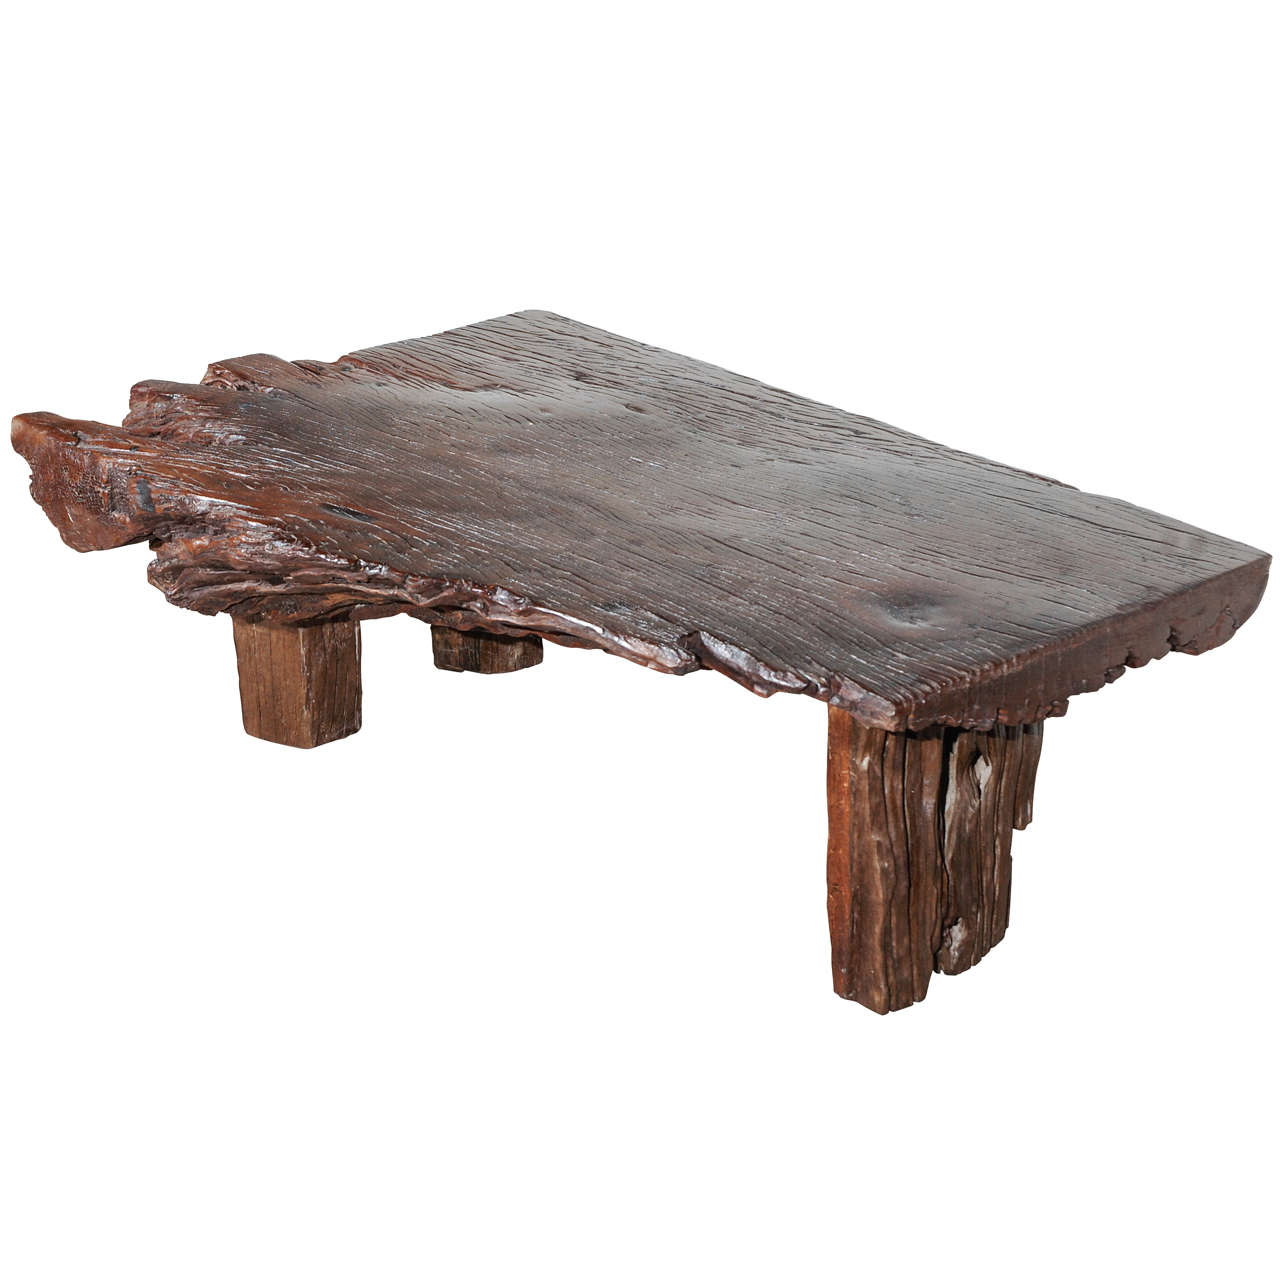 Reclaimed wood slab coffee table for sale at 1stdibs for Wood slab coffee table